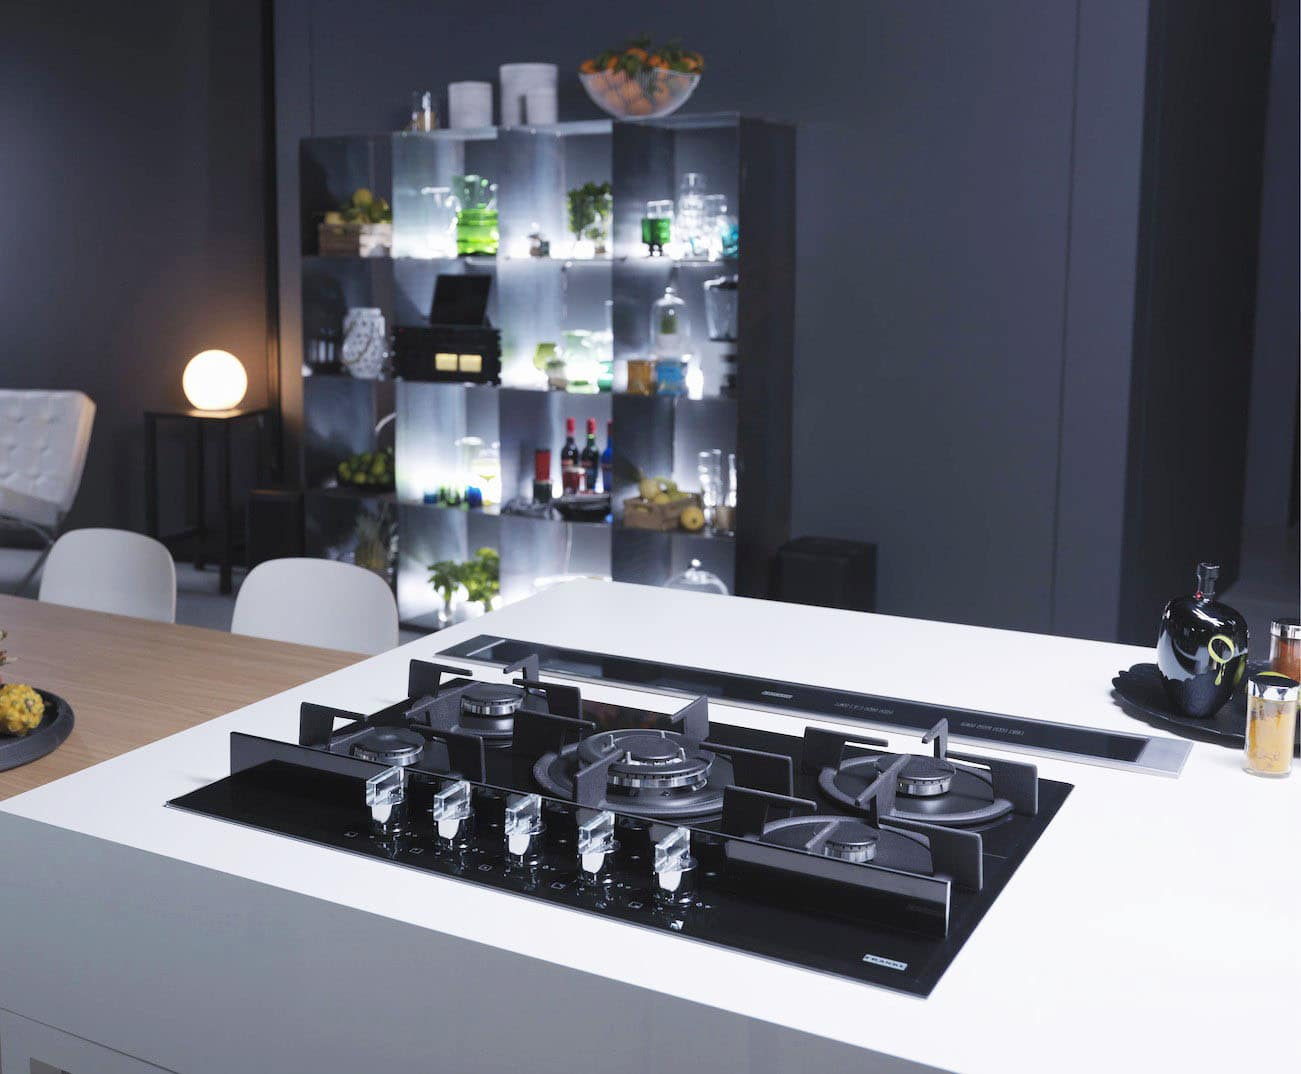 Stunning Cucine Franke Prezzi Photos - Ideas & Design 2017 ...